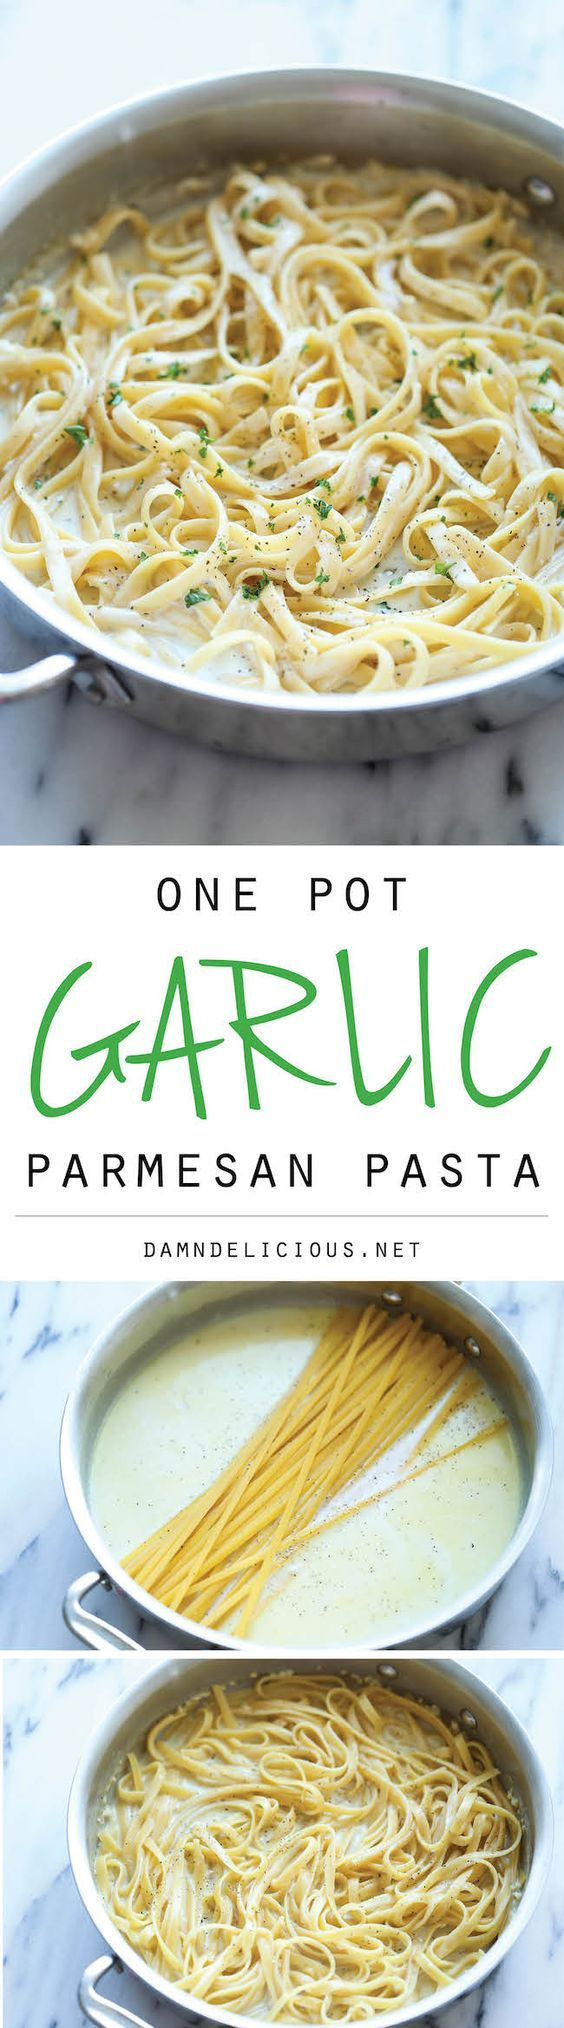 One Pot Garlic Parmesan Pasta Recipe plus 24 more of the most pinned one pot meals